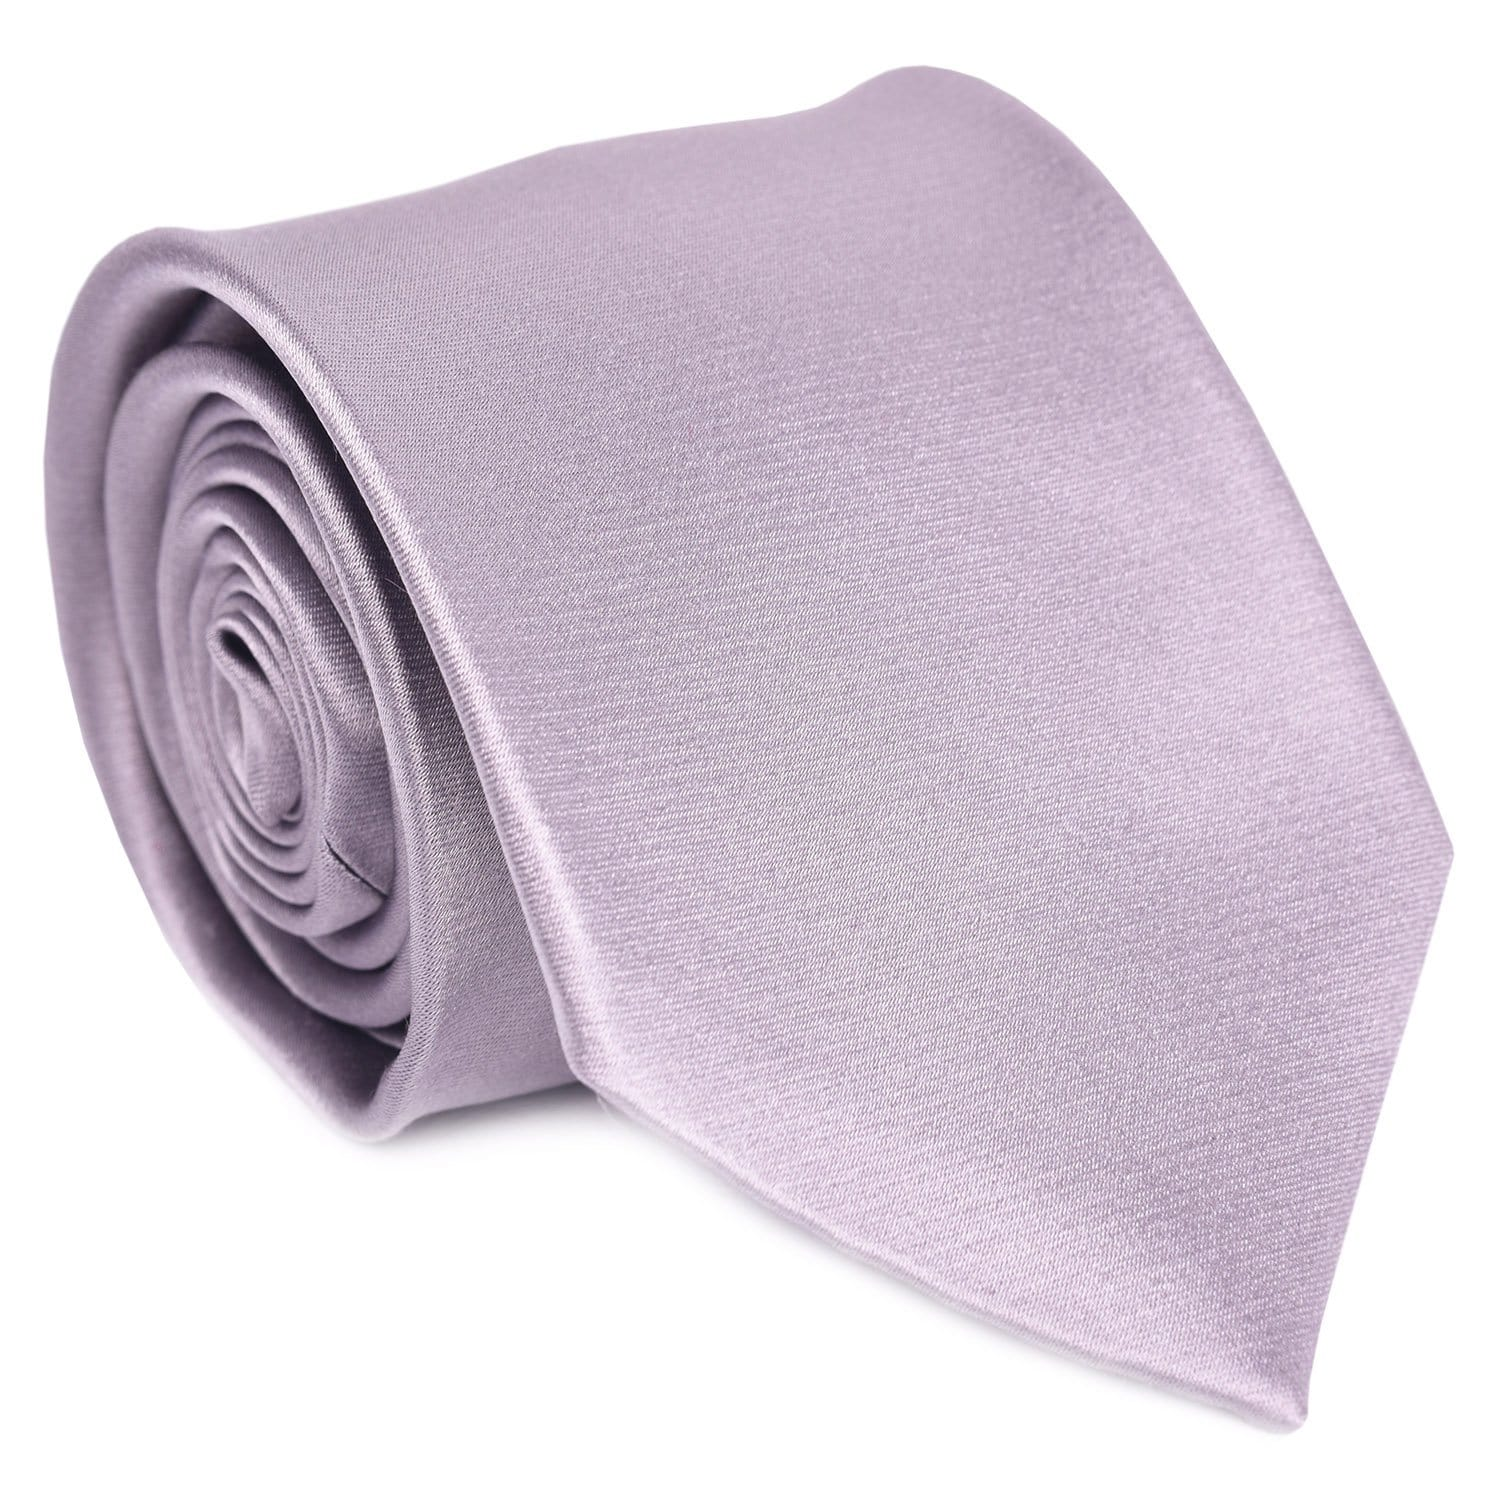 Silver Satin Formal Tie - Haspel Clothing